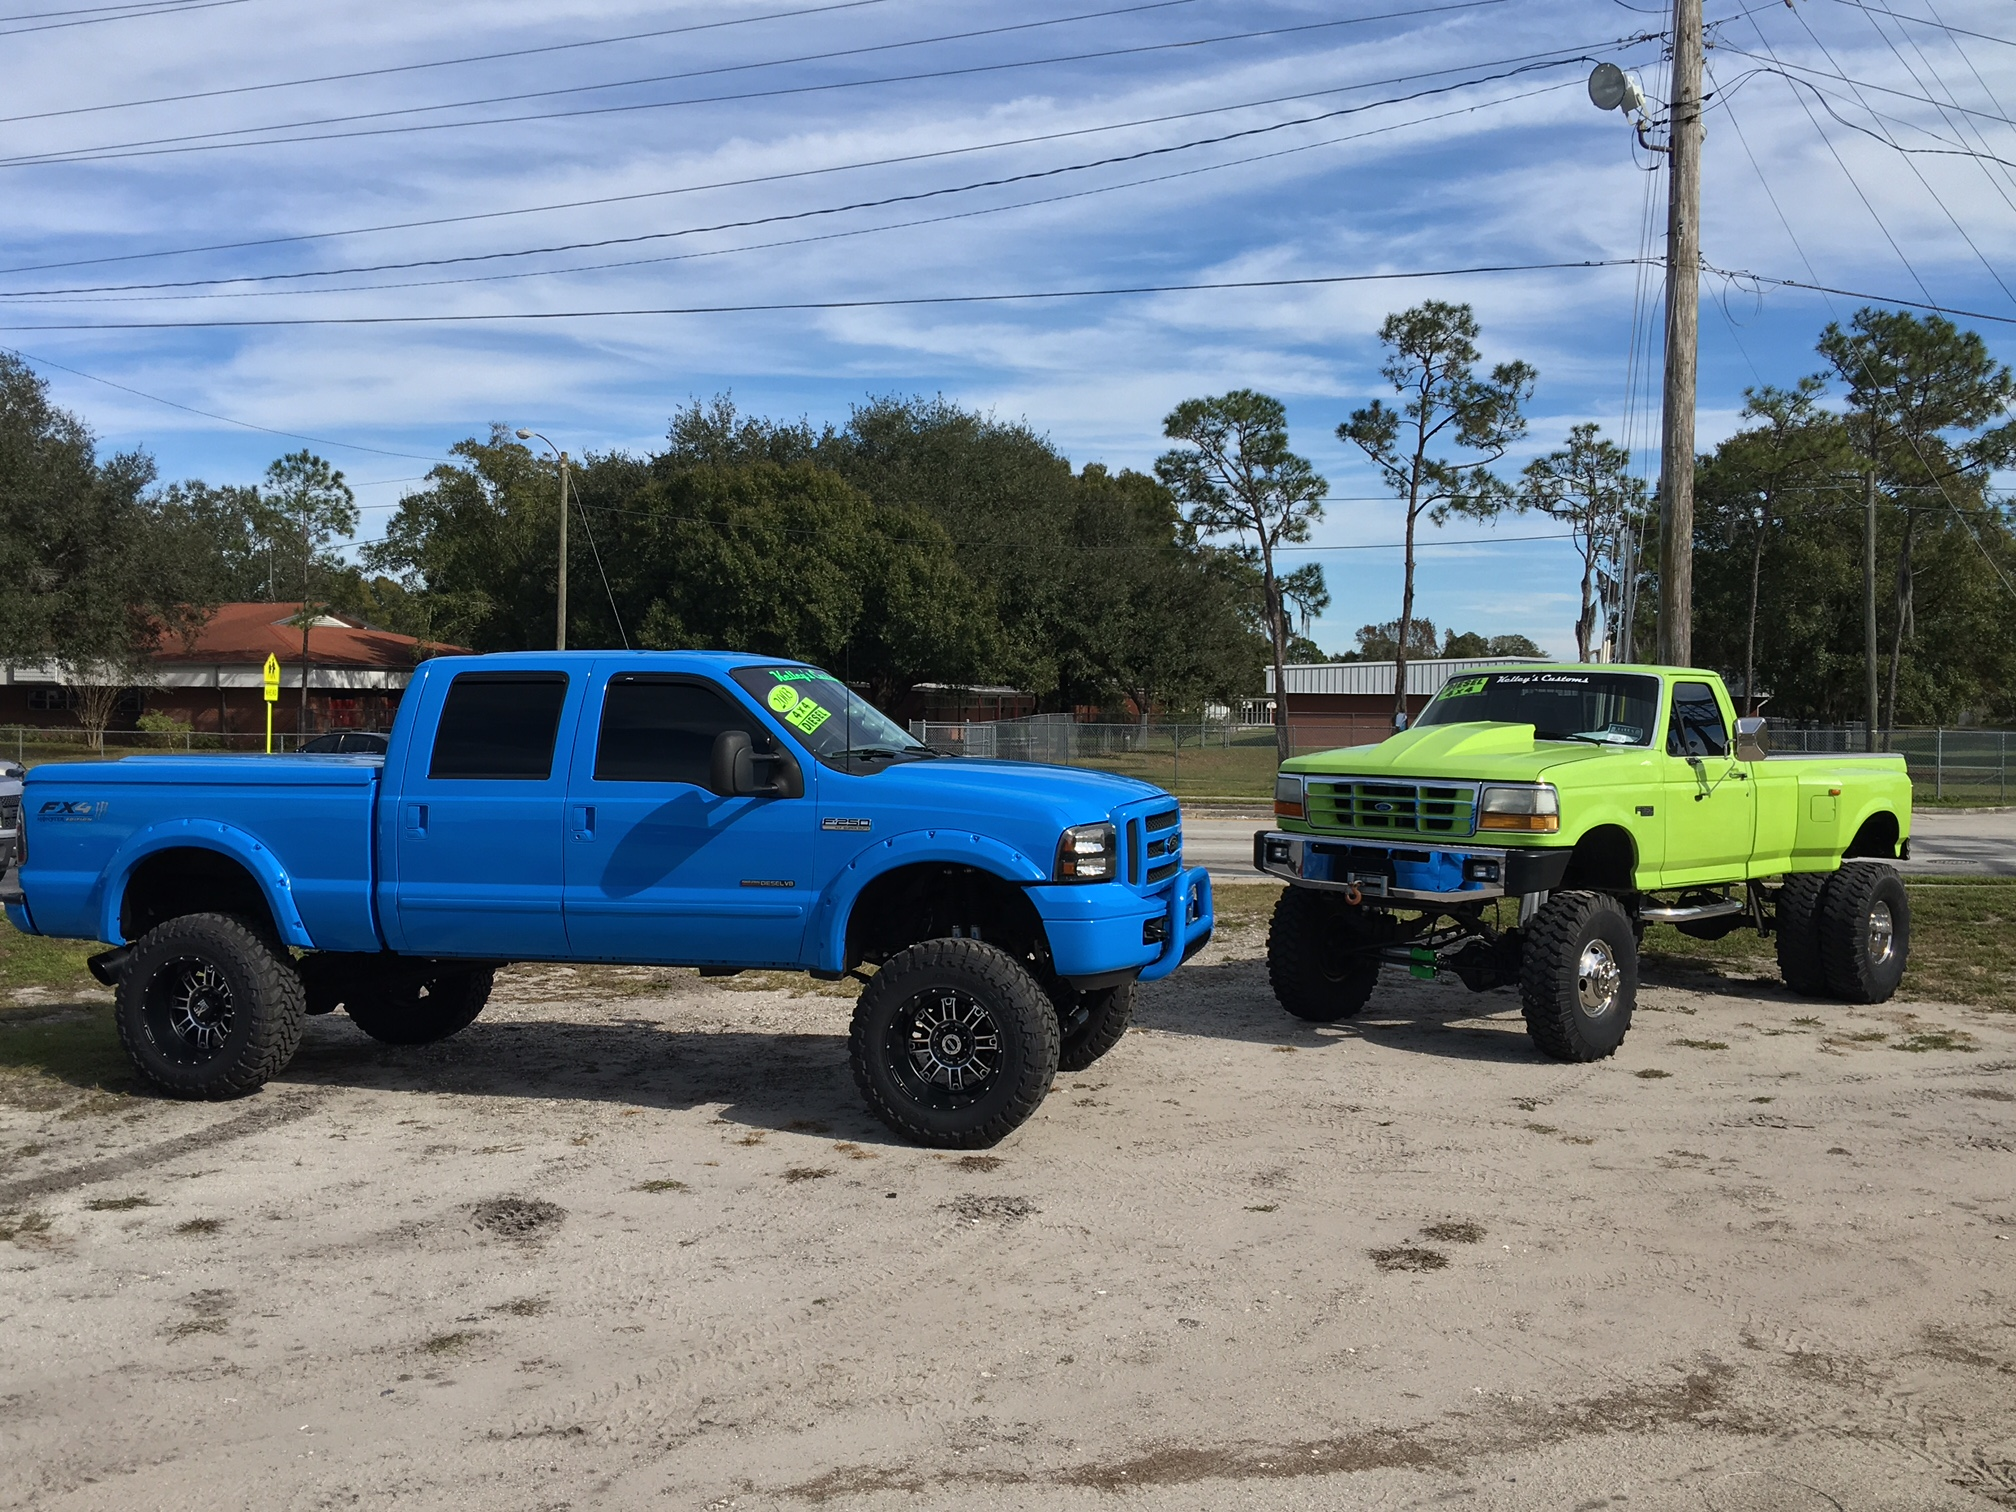 Kelley lakeland truck center autos post for Lakeland motor vehicle and driver license services lakeland fl